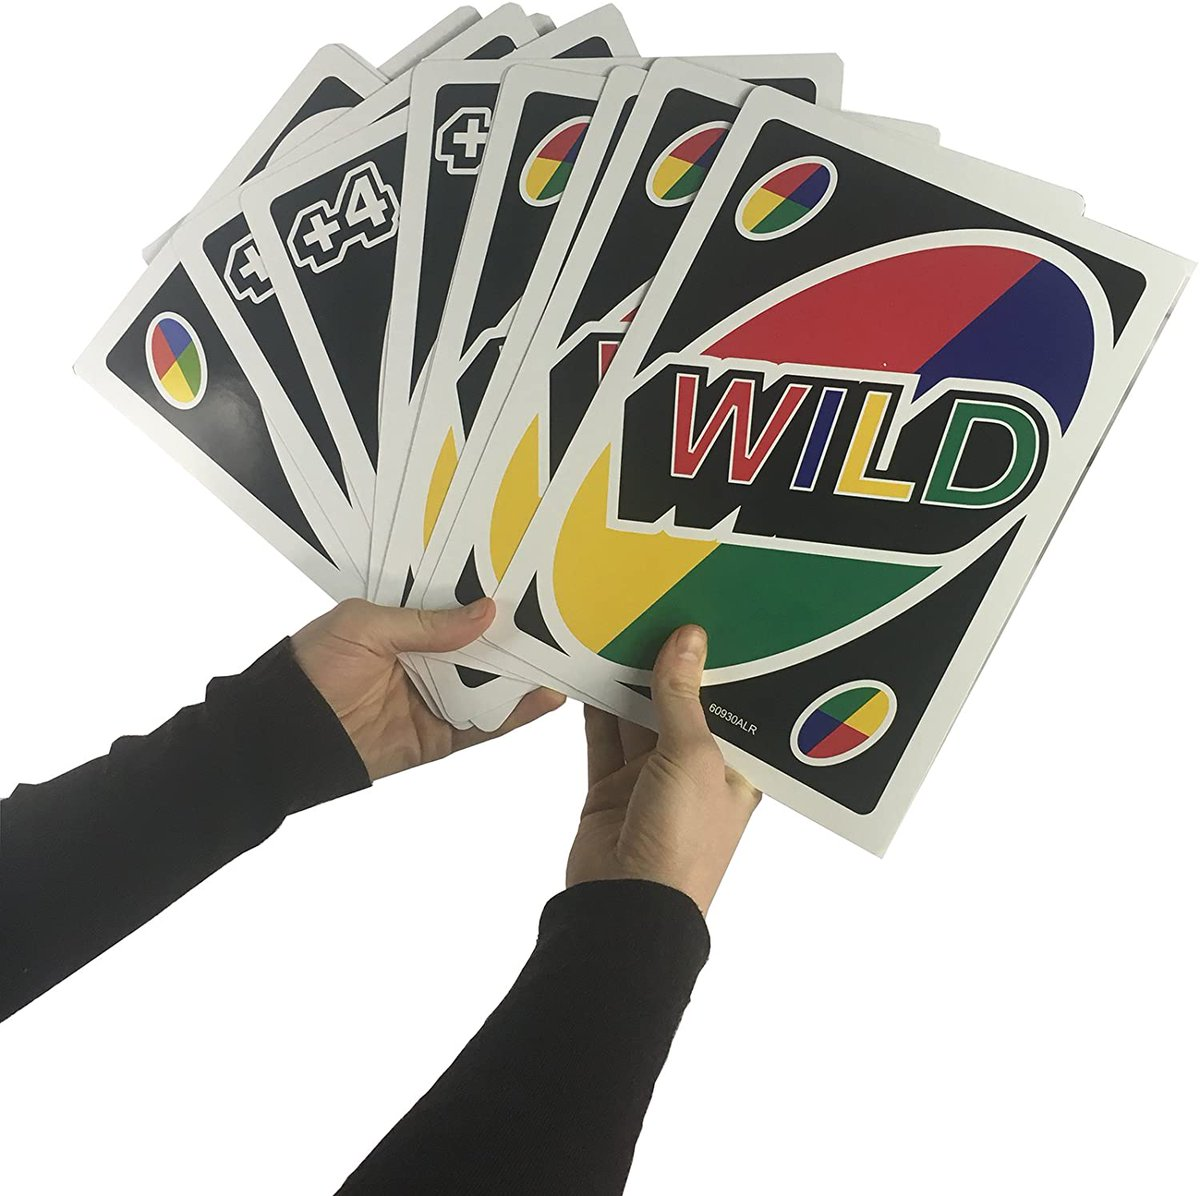 Giant UNO Card Game   The same family card game you already know but with cards 3 times larger  Great size for the beach or pool, especially when 8 to 10 people want to play!   Slam that Draw 4 down like a boss!!  Starting at only $14.99   https://t.co/fpBFCvohxb  #ad #giant #uno https://t.co/qn0r51ooGn